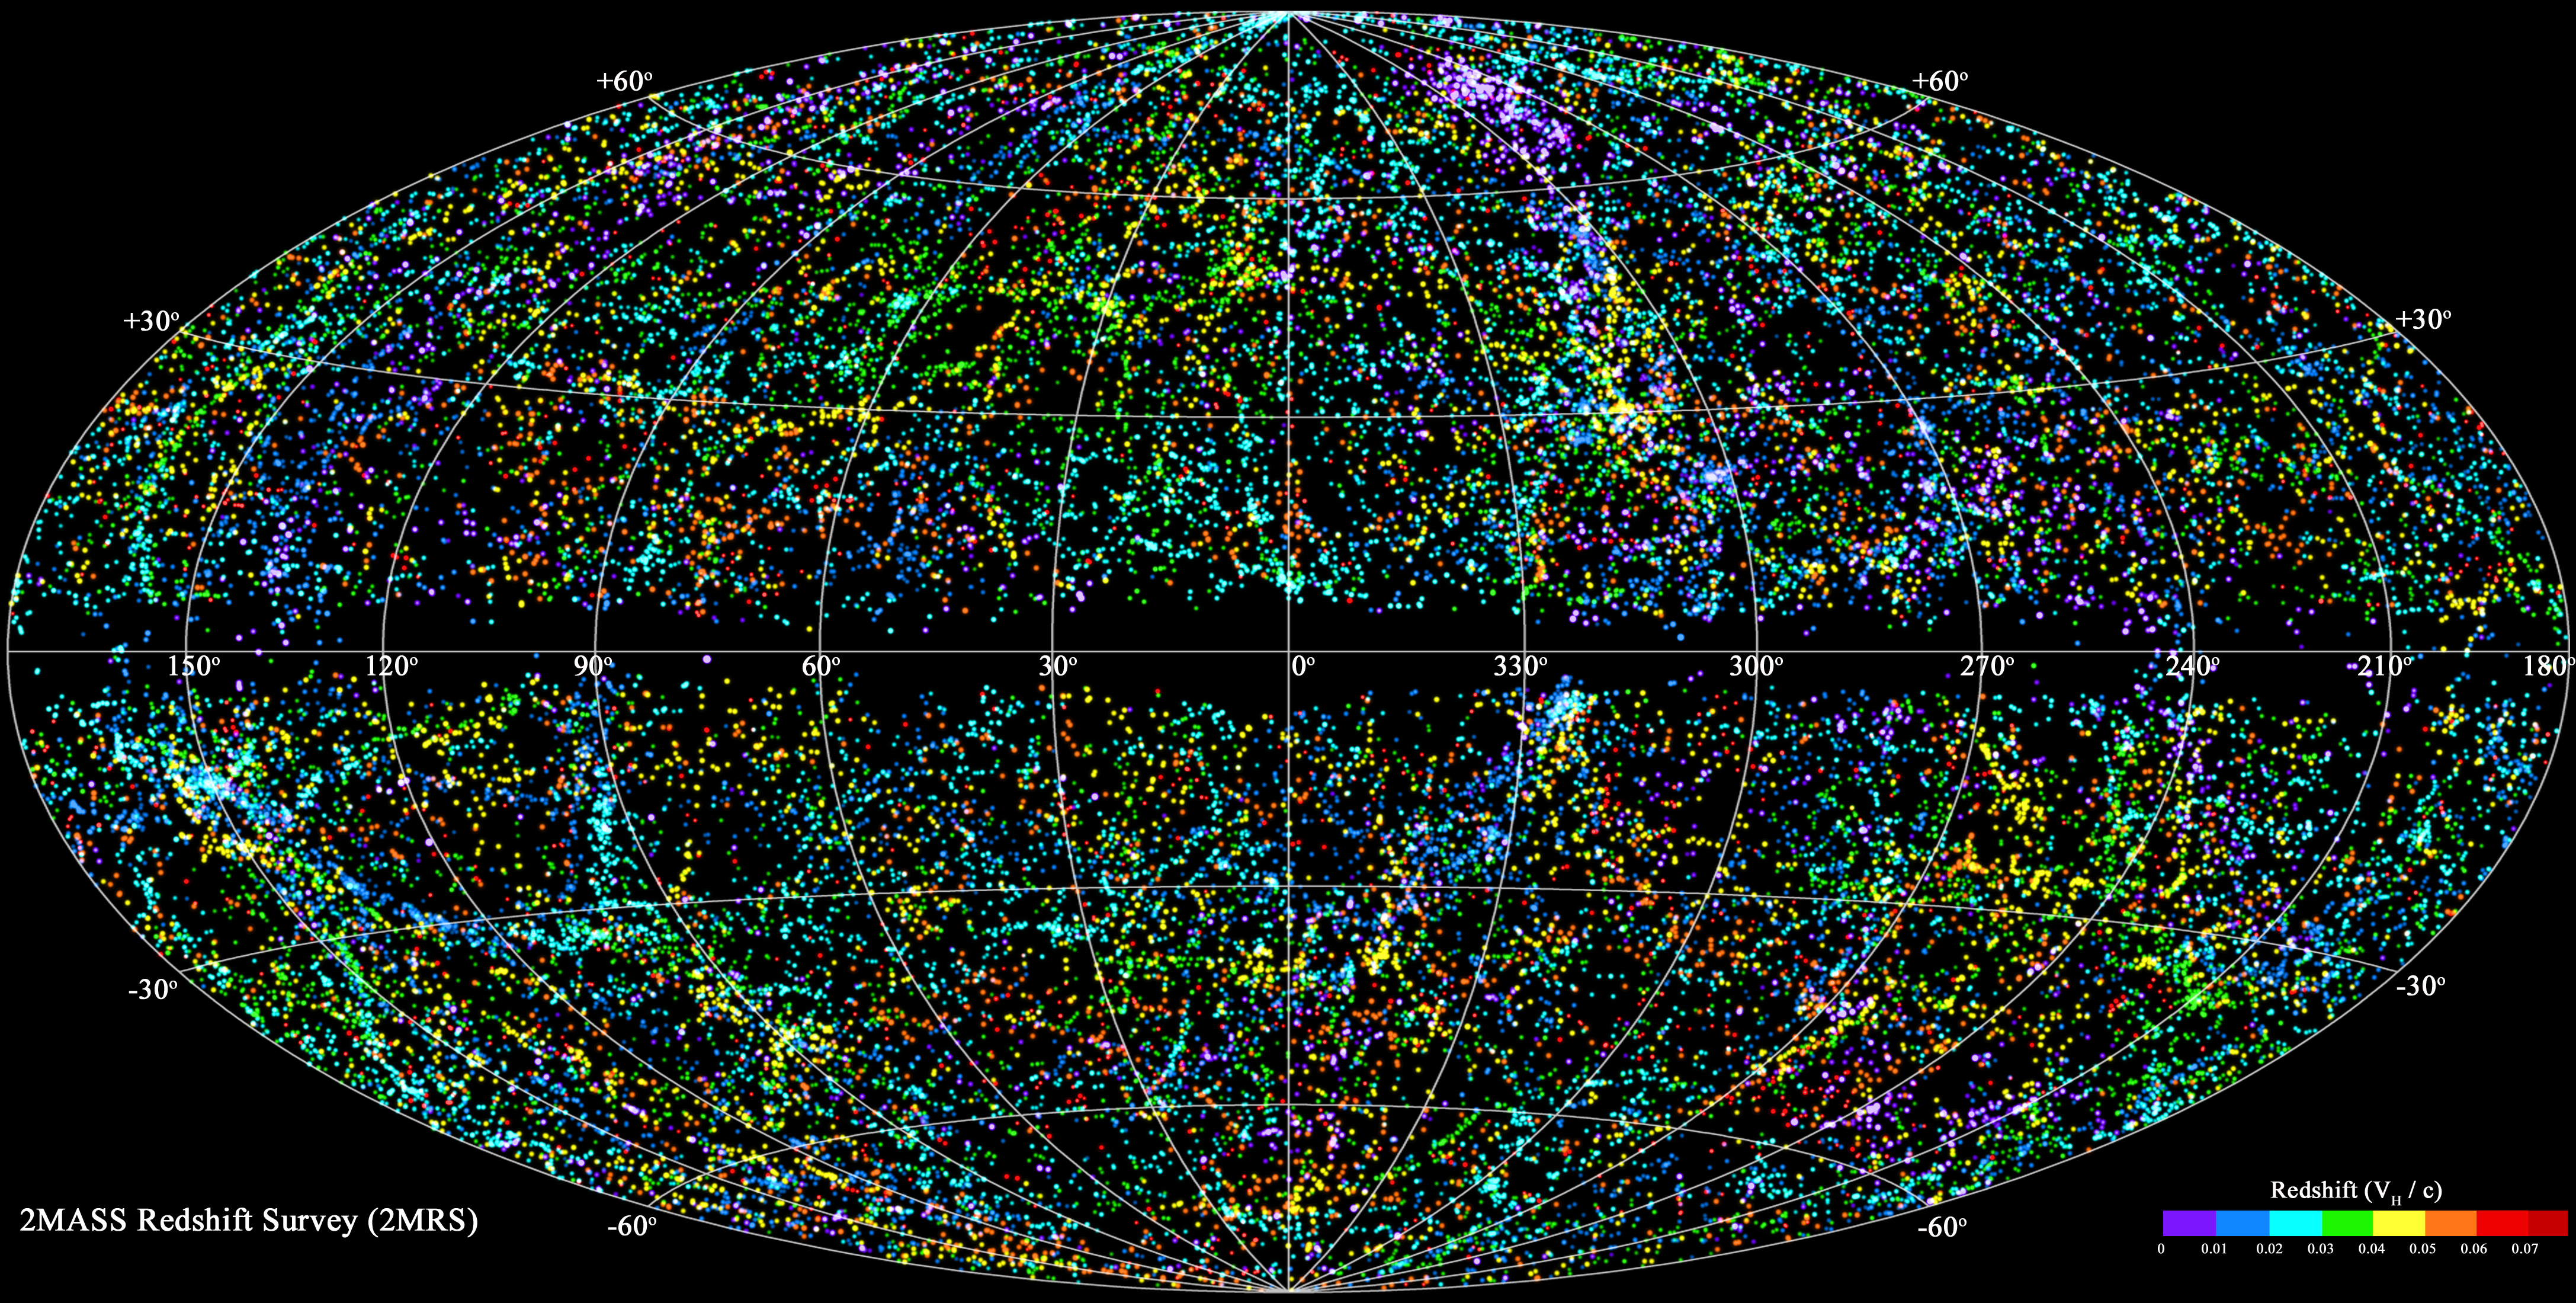 3D Map of Universe Captures 43,000 Galaxies | Open Culture Galaxy Maps on sun map, lightning map, milky way map, spectrum map, classic map, science map, astronomy map, world map, custom map, supreme map, universe map, venus map, solar system map, usa map, hotspot map, asteroid map, continents map, google map, constellation map, local supercluster map,